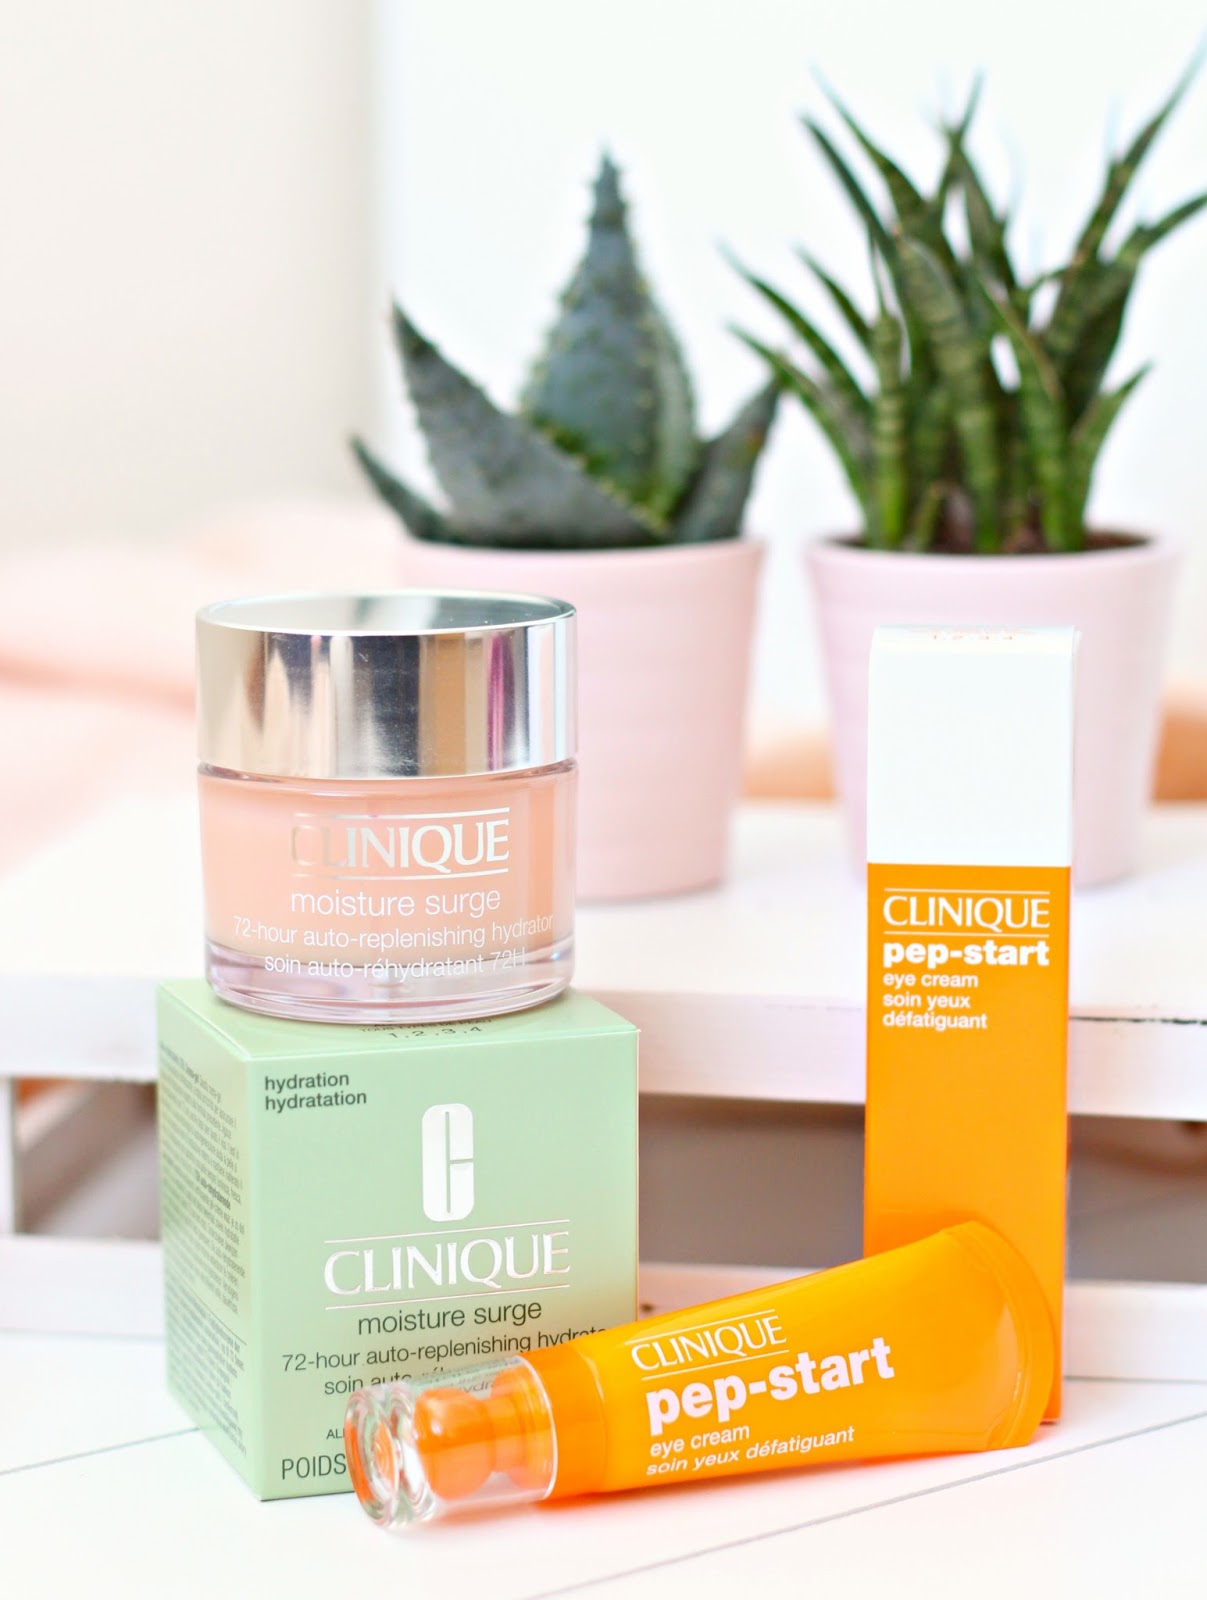 My First Clinique Skincare Bits